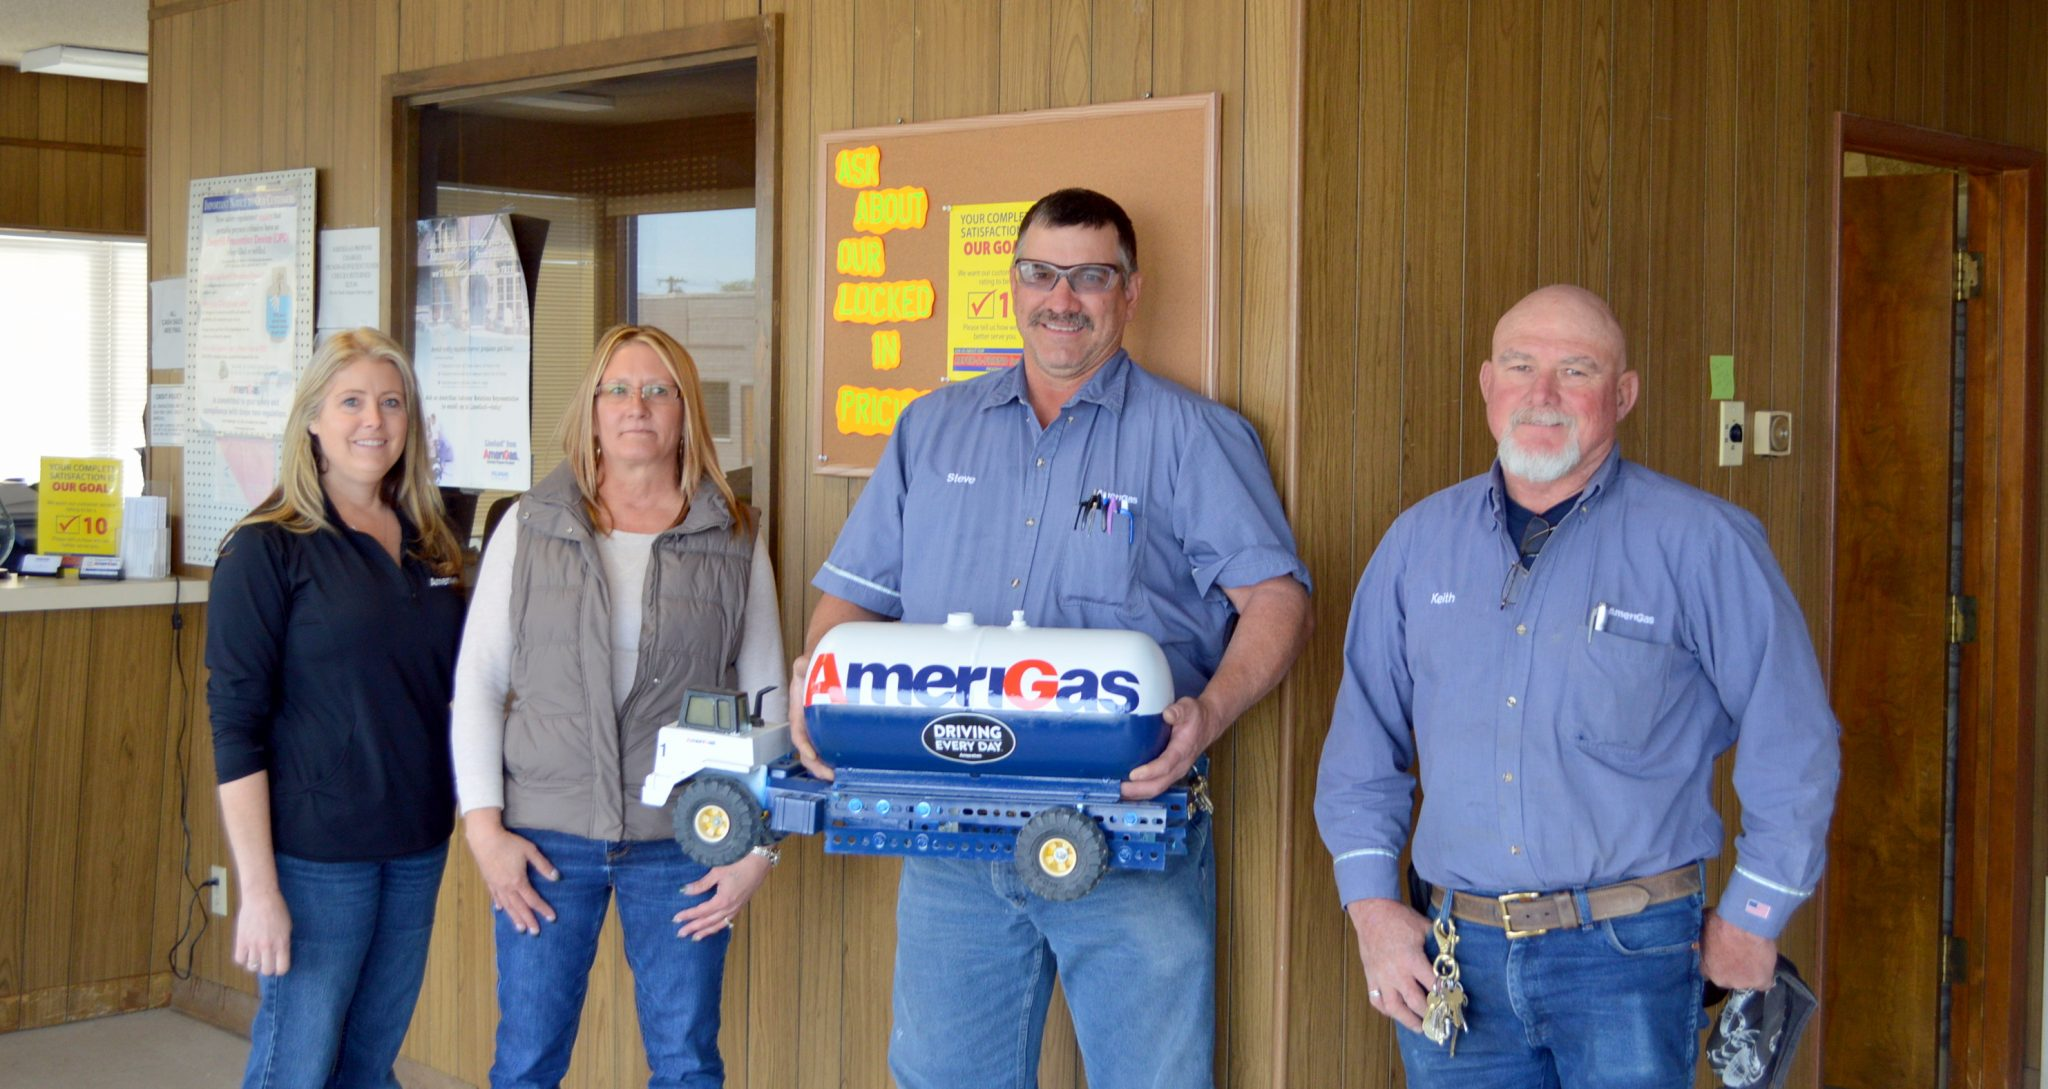 Amerigas, serving the county for over 25 years